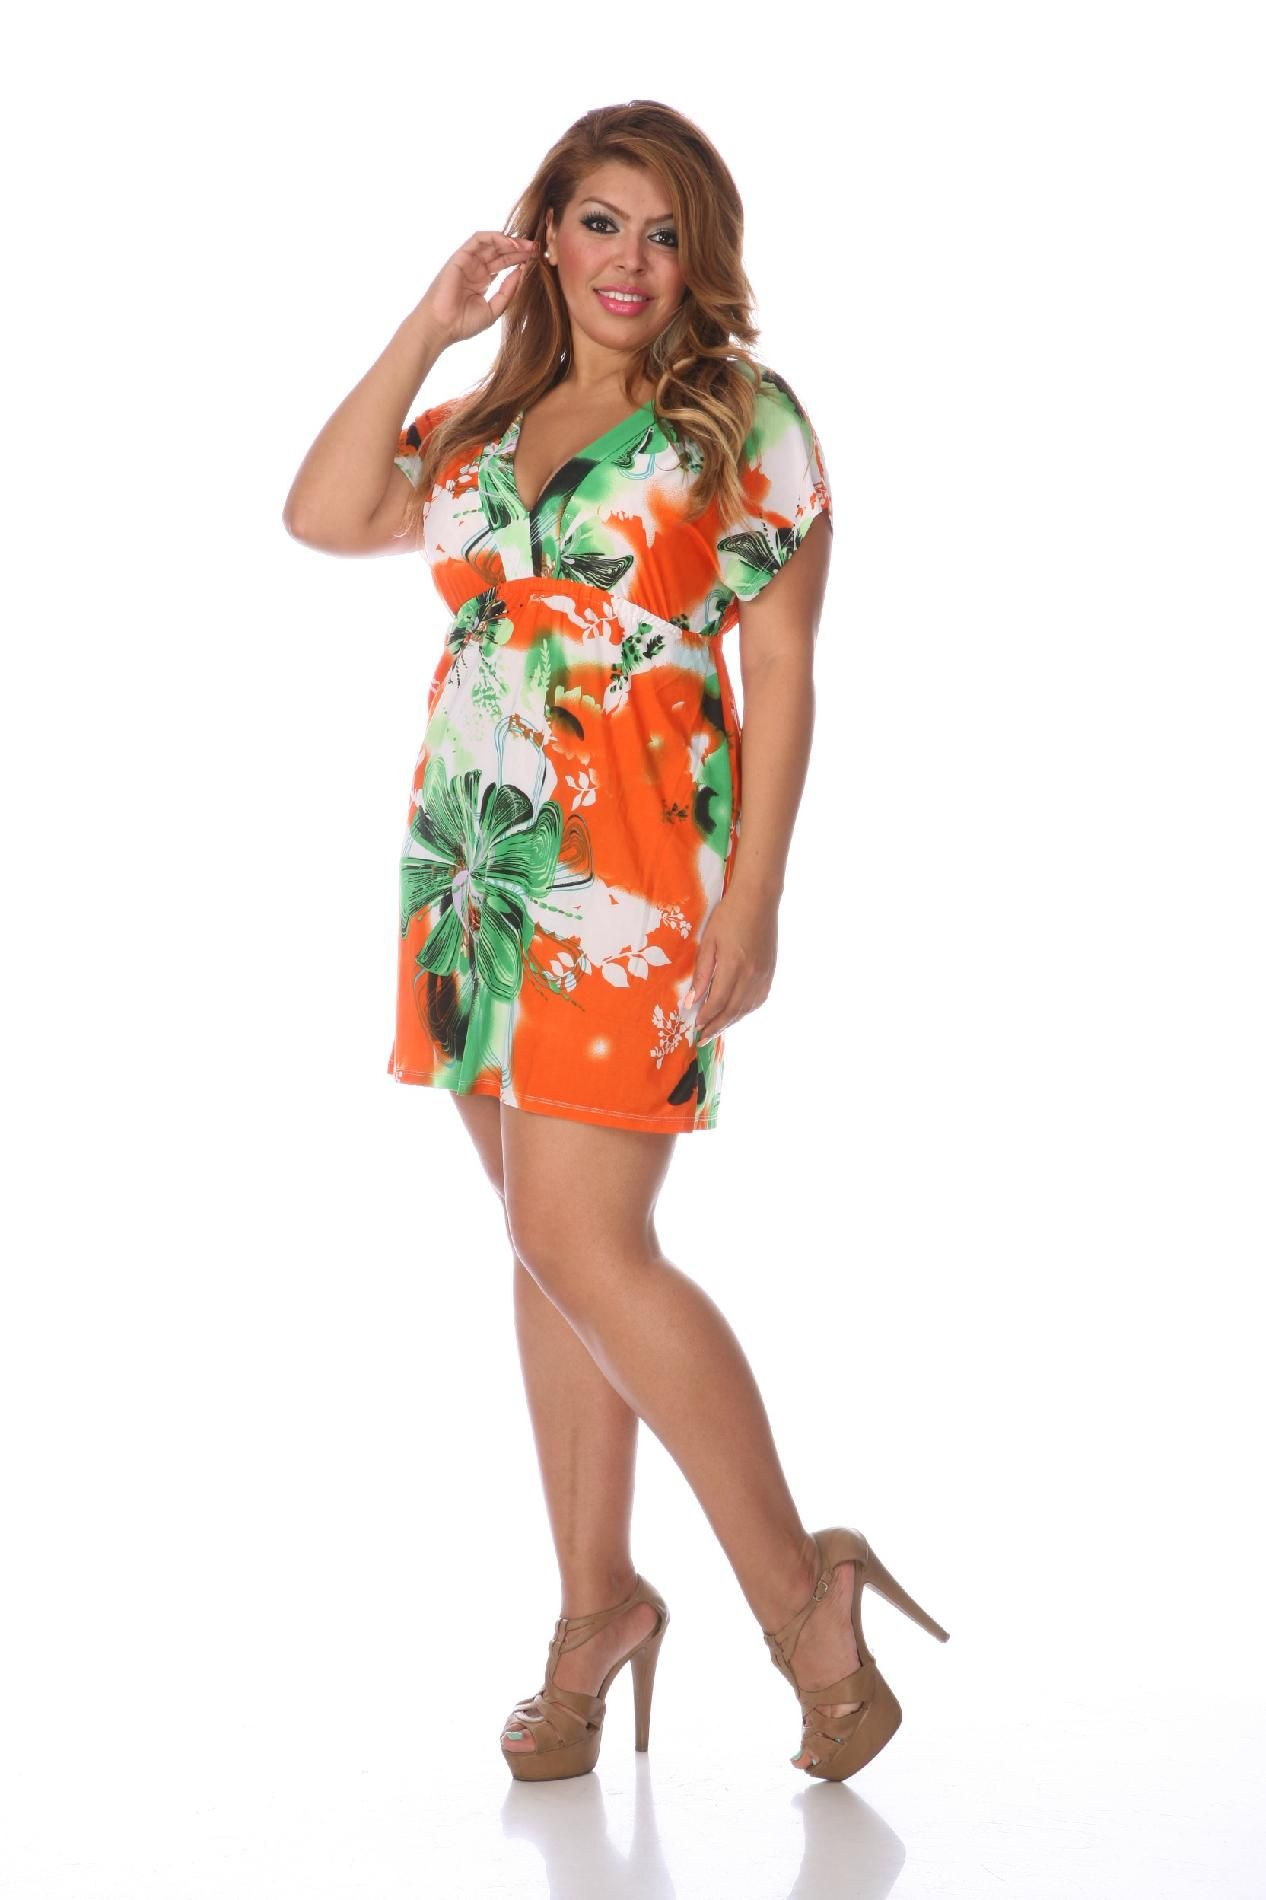 6f6259052844 plus+size+summer+dresses | of plus size hawaiian summer dresses? I highly  recommend Women's Plus .